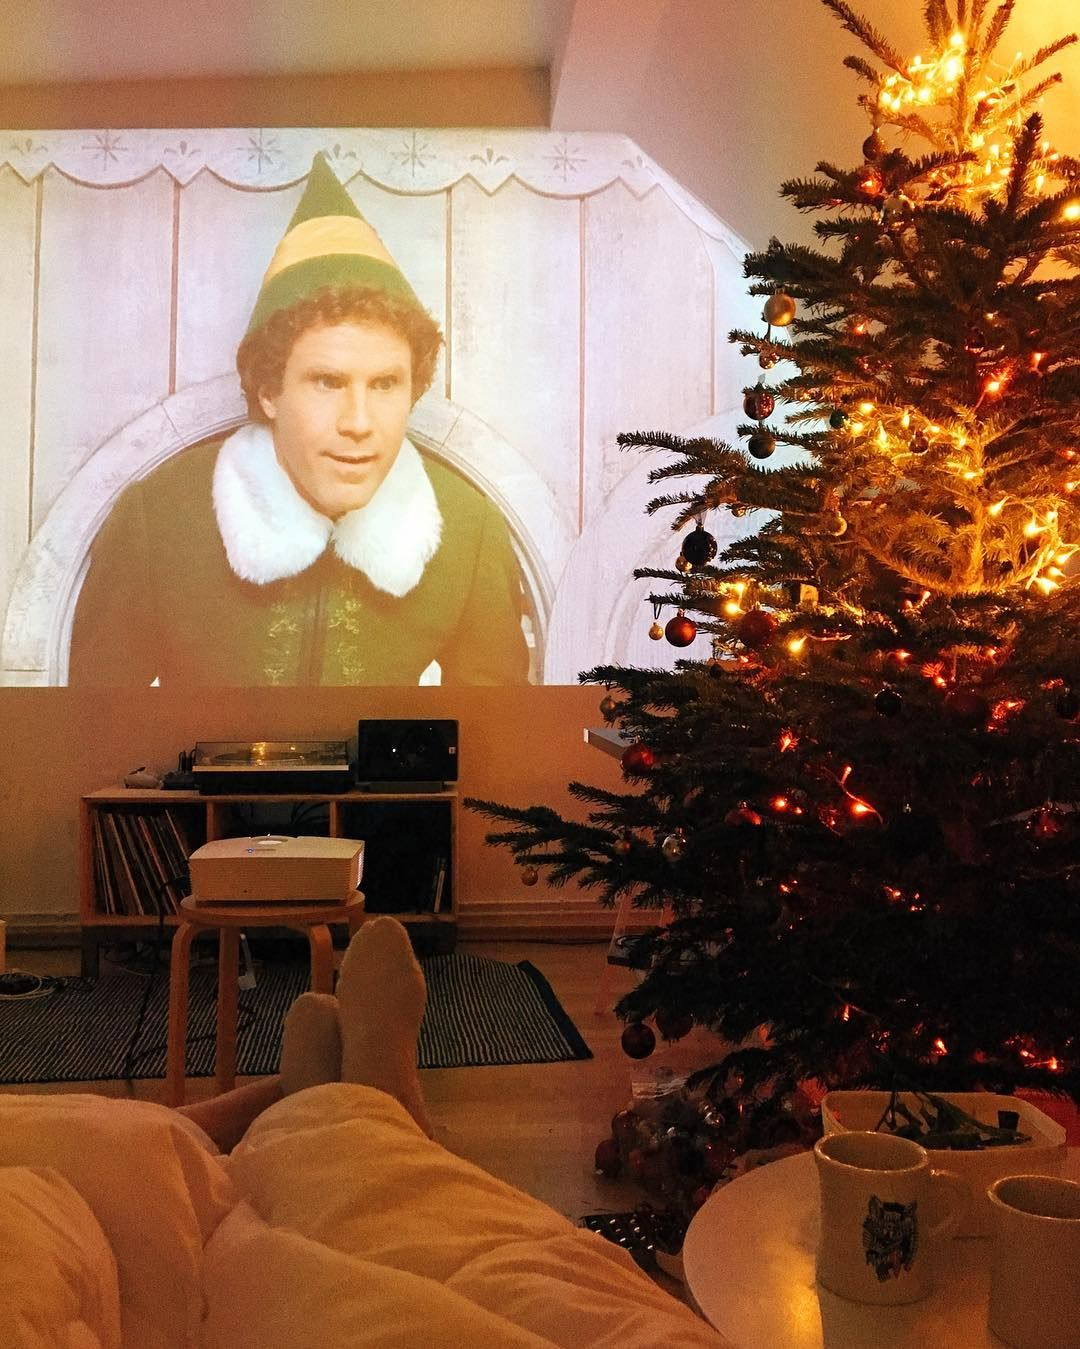 Christmas Movie Night Elf Chill Watching My Favorite Xmas Movie With My Love Perfect Christmas In 2020 Christmas Movie Night Cozy Christmas Christmas